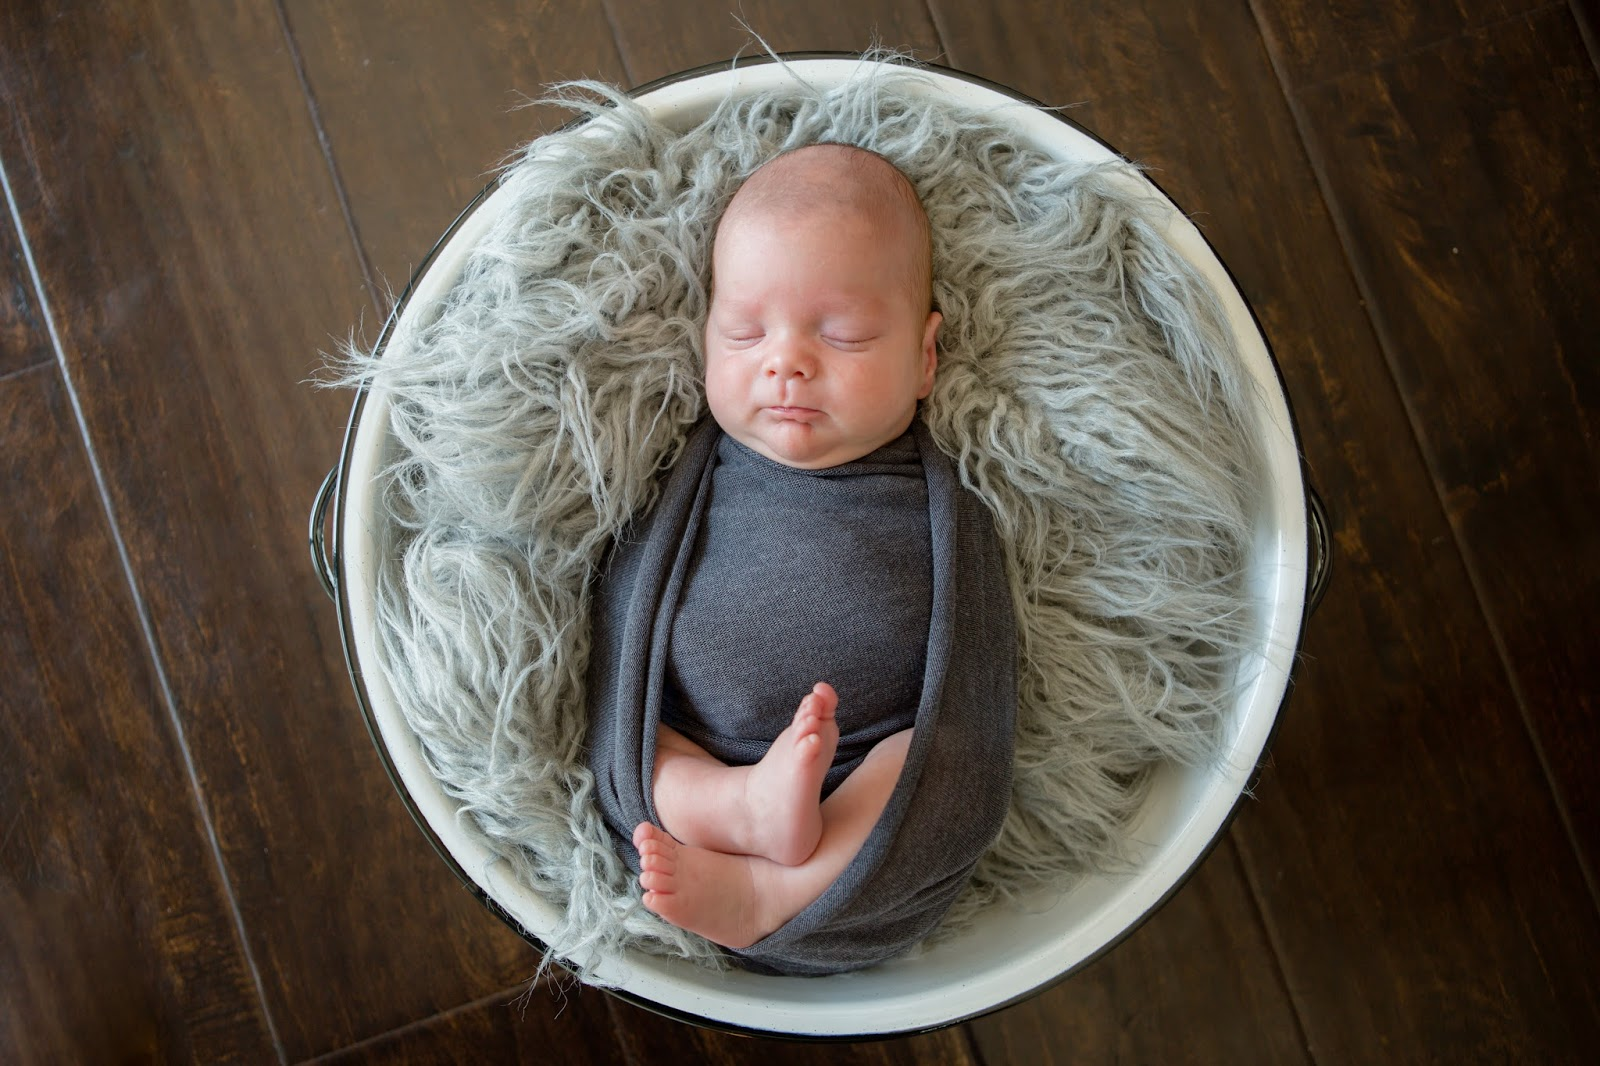 newborn baby born swaddled in gray swaddle